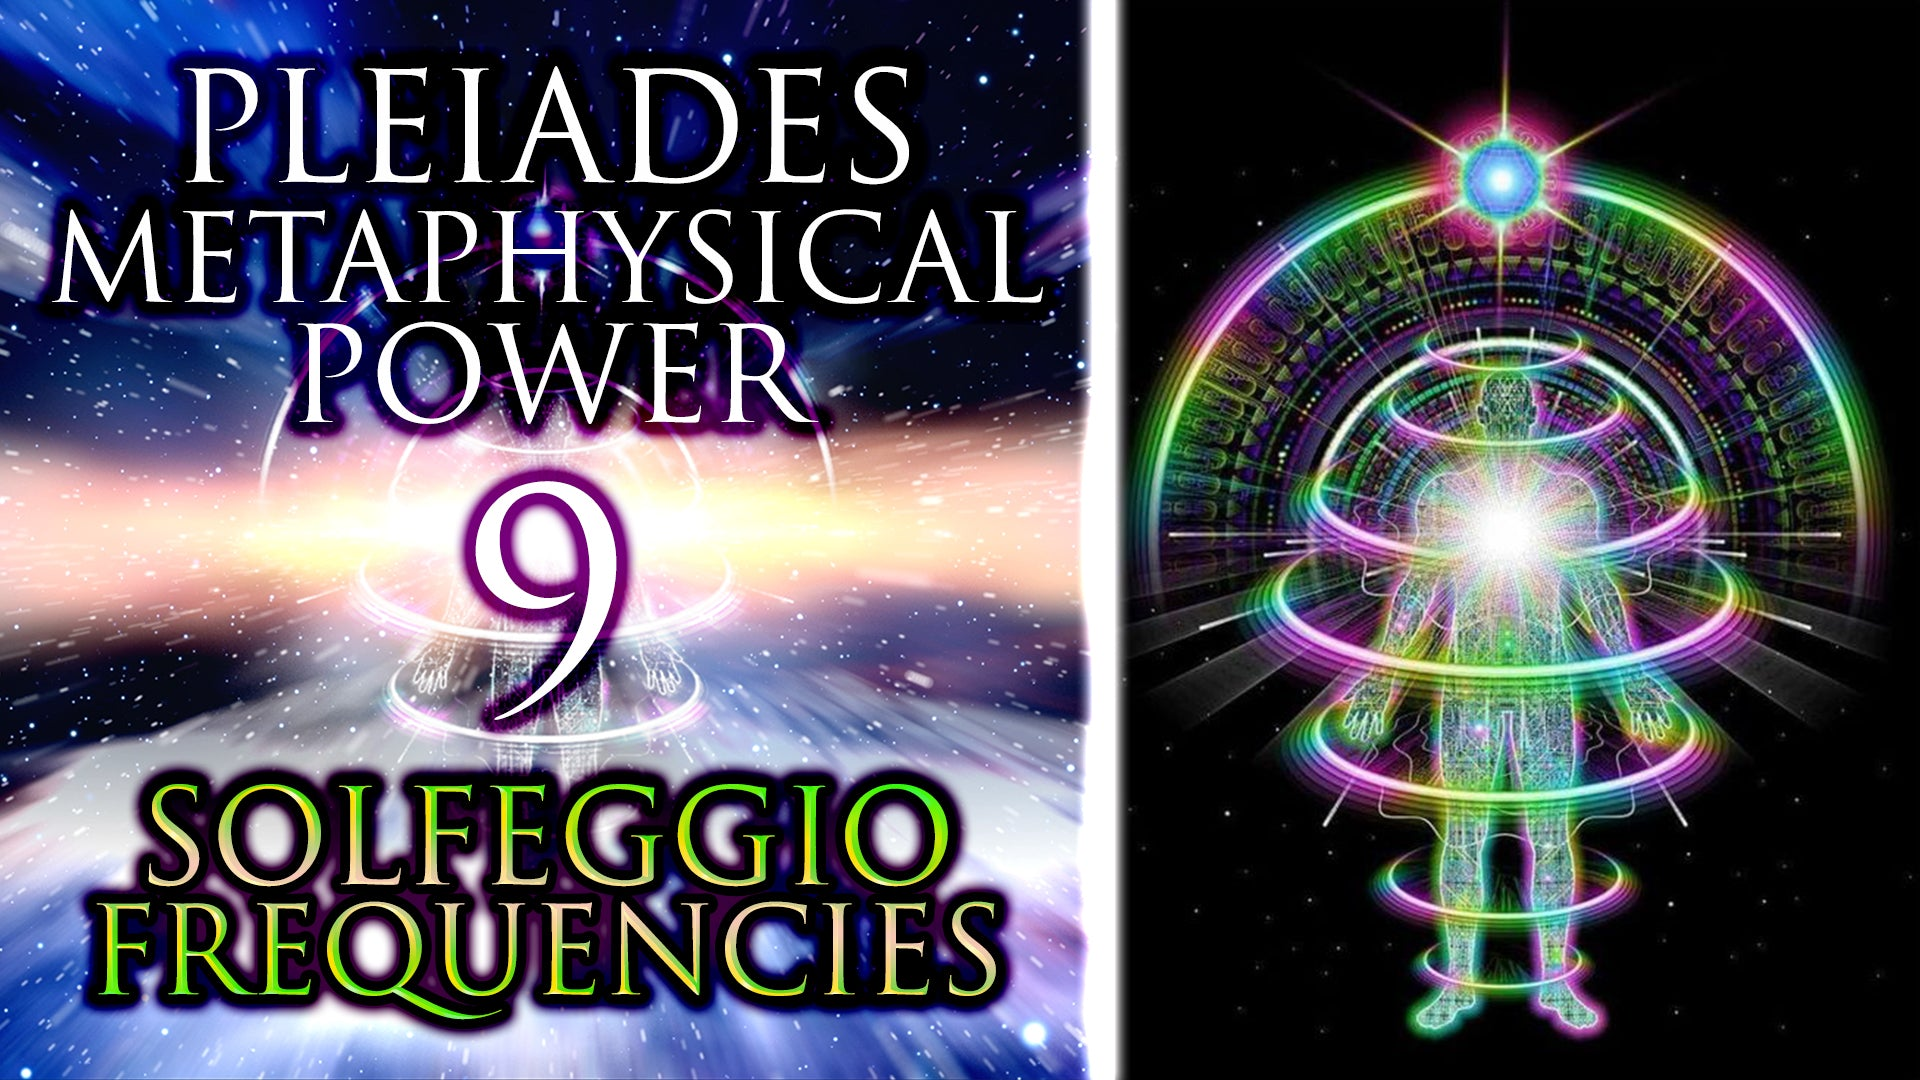 All 9 Pleiades Solfeggio Frequencies ꩜ Metaphysical Power Meditation ꩜ 430.65 Hz Shamanic Drums